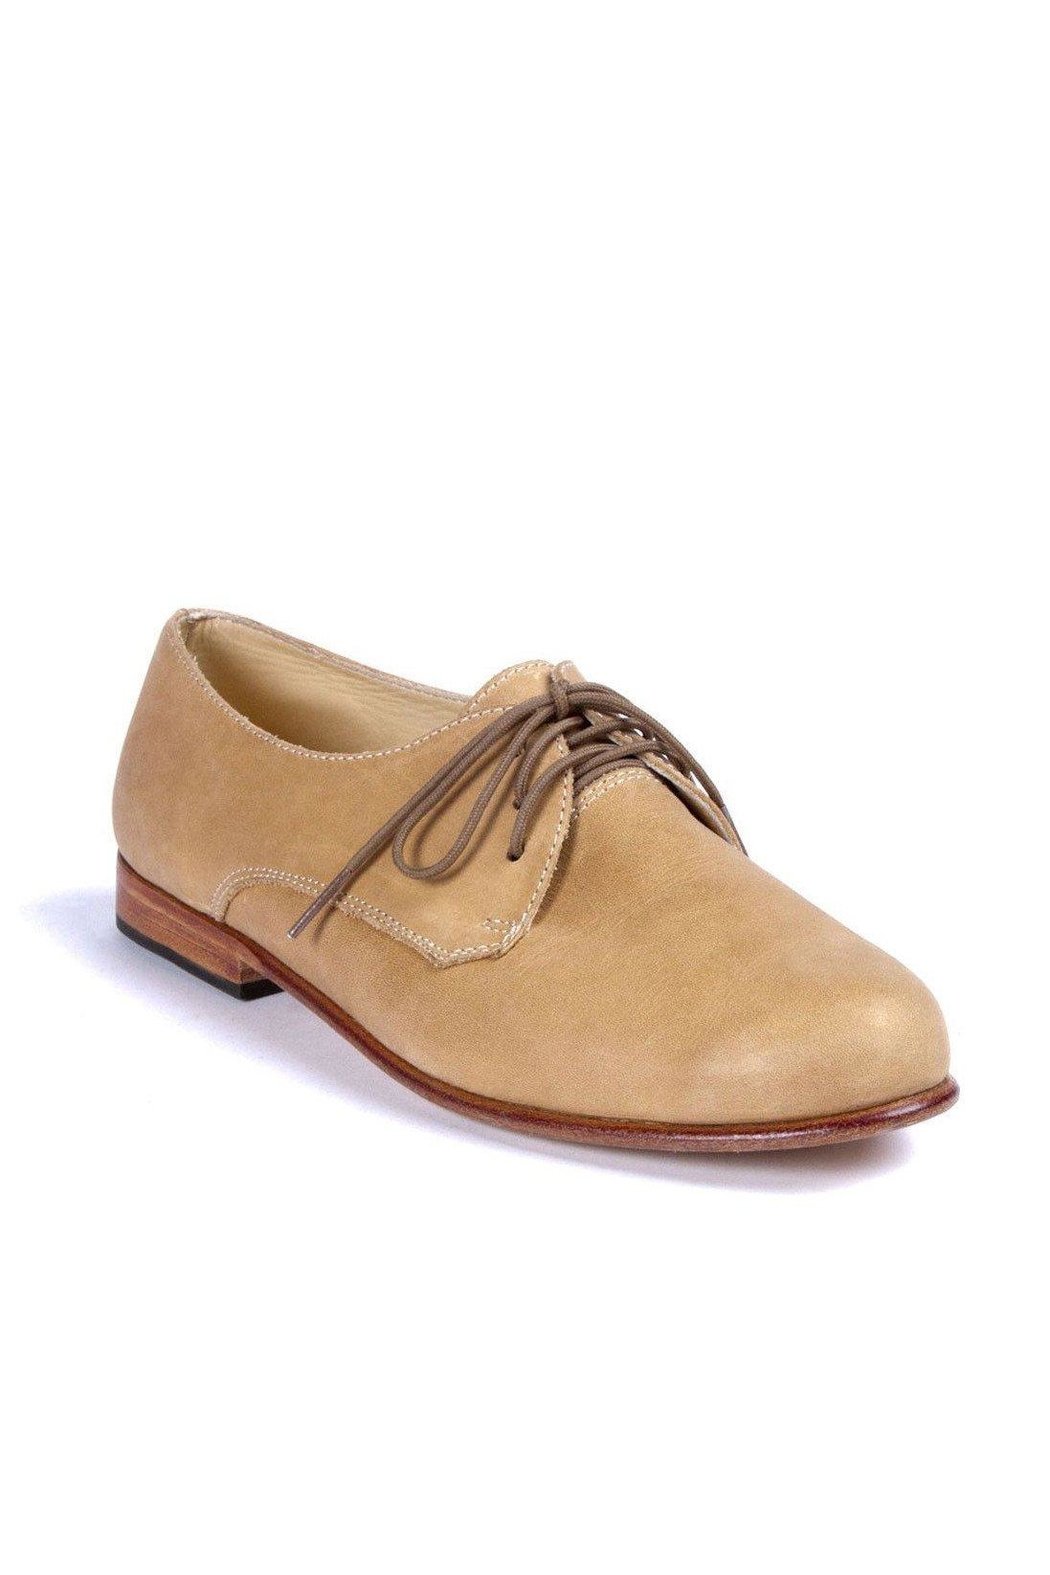 Nisolo Almond Oliver Oxford Shoes - Front Full Image